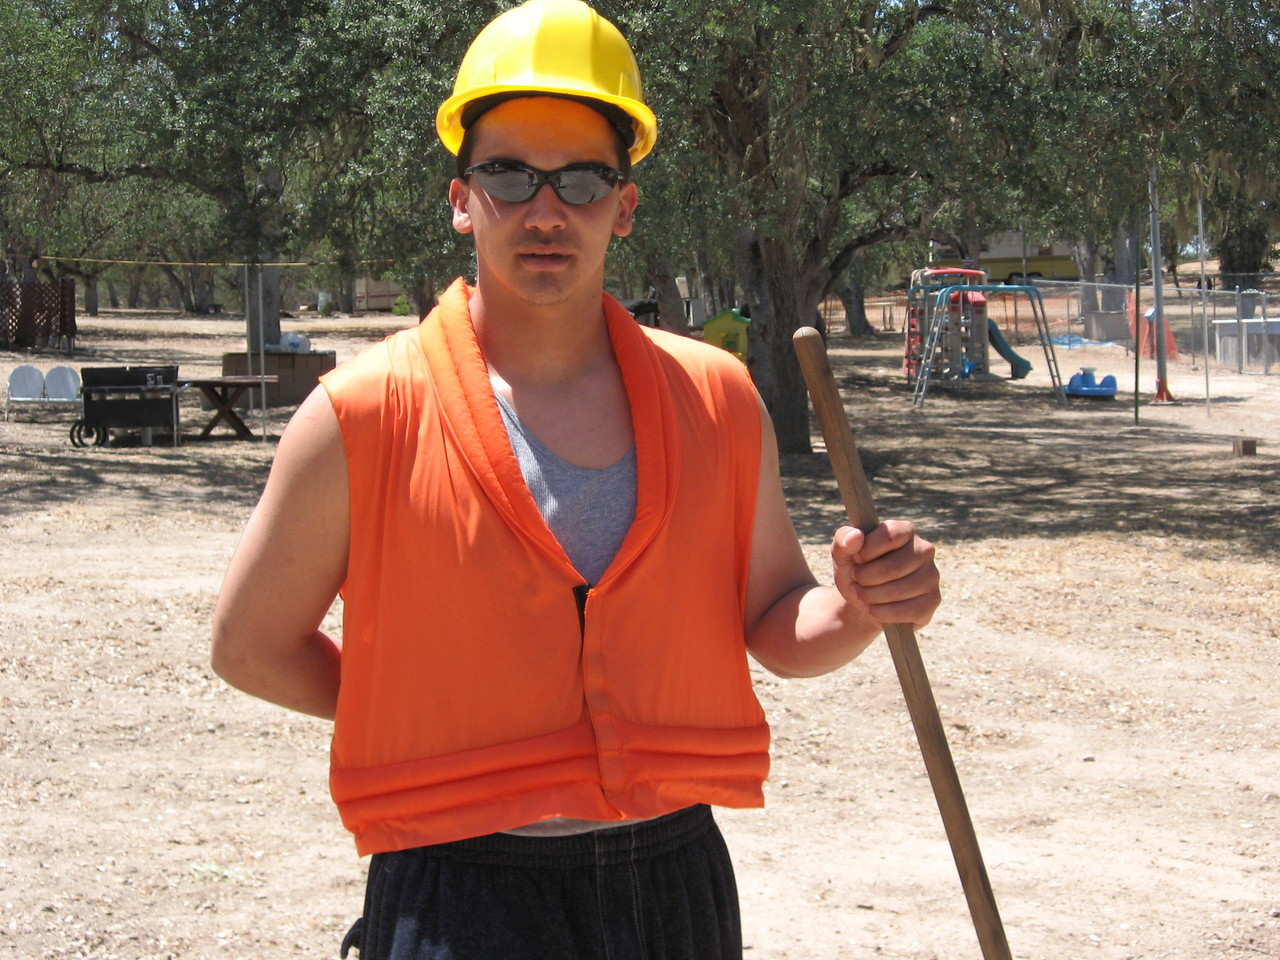 Safety includes loss-prevention, and cool vests help beat heat stress.